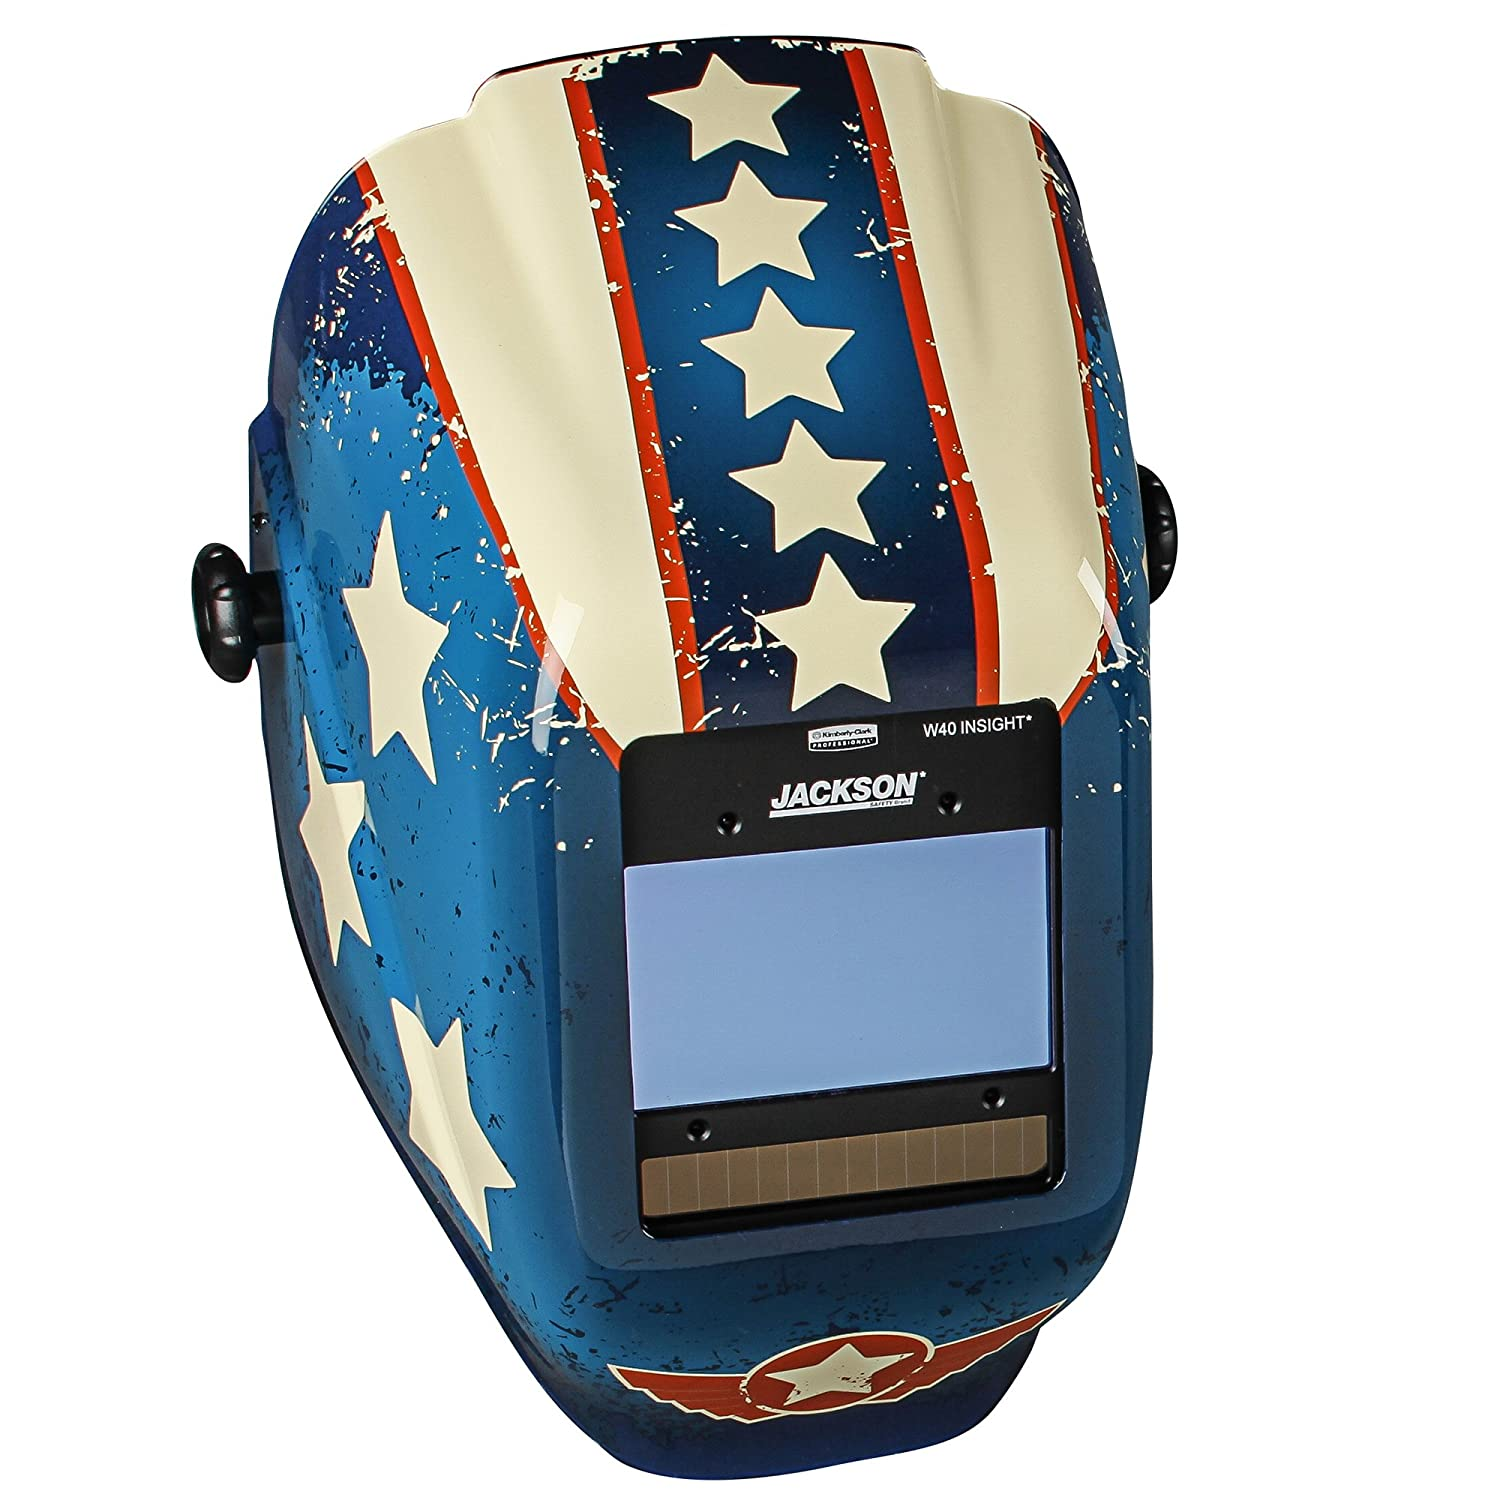 Jackson Safety Insight Variable Auto Darkening Welding Helmet 46101